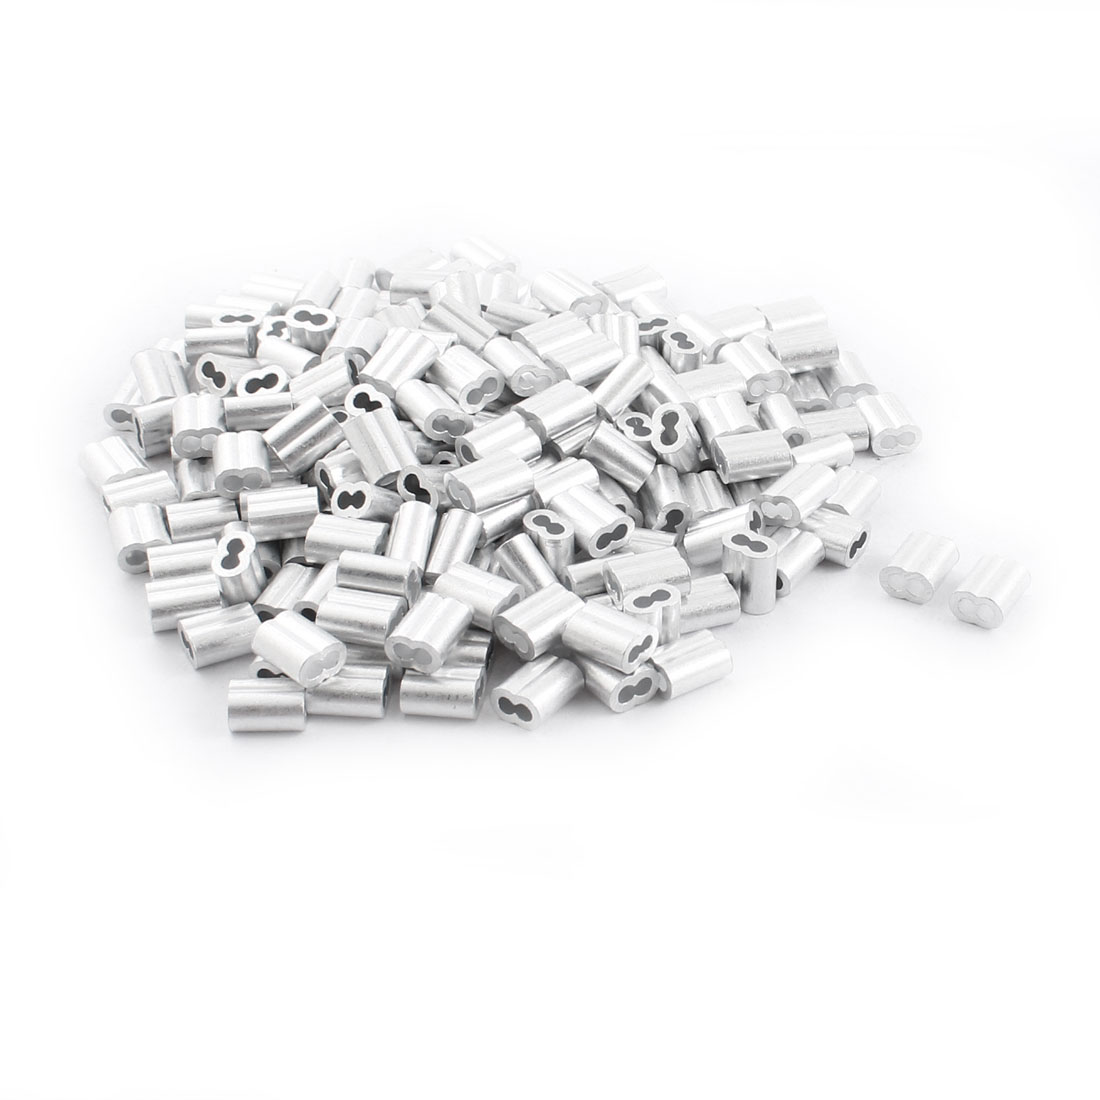 "200Pcs 1/8""x 3/8"" Aluminum Hourglass Ferrules Sleeve Crimp for 2mm Wire Rope"